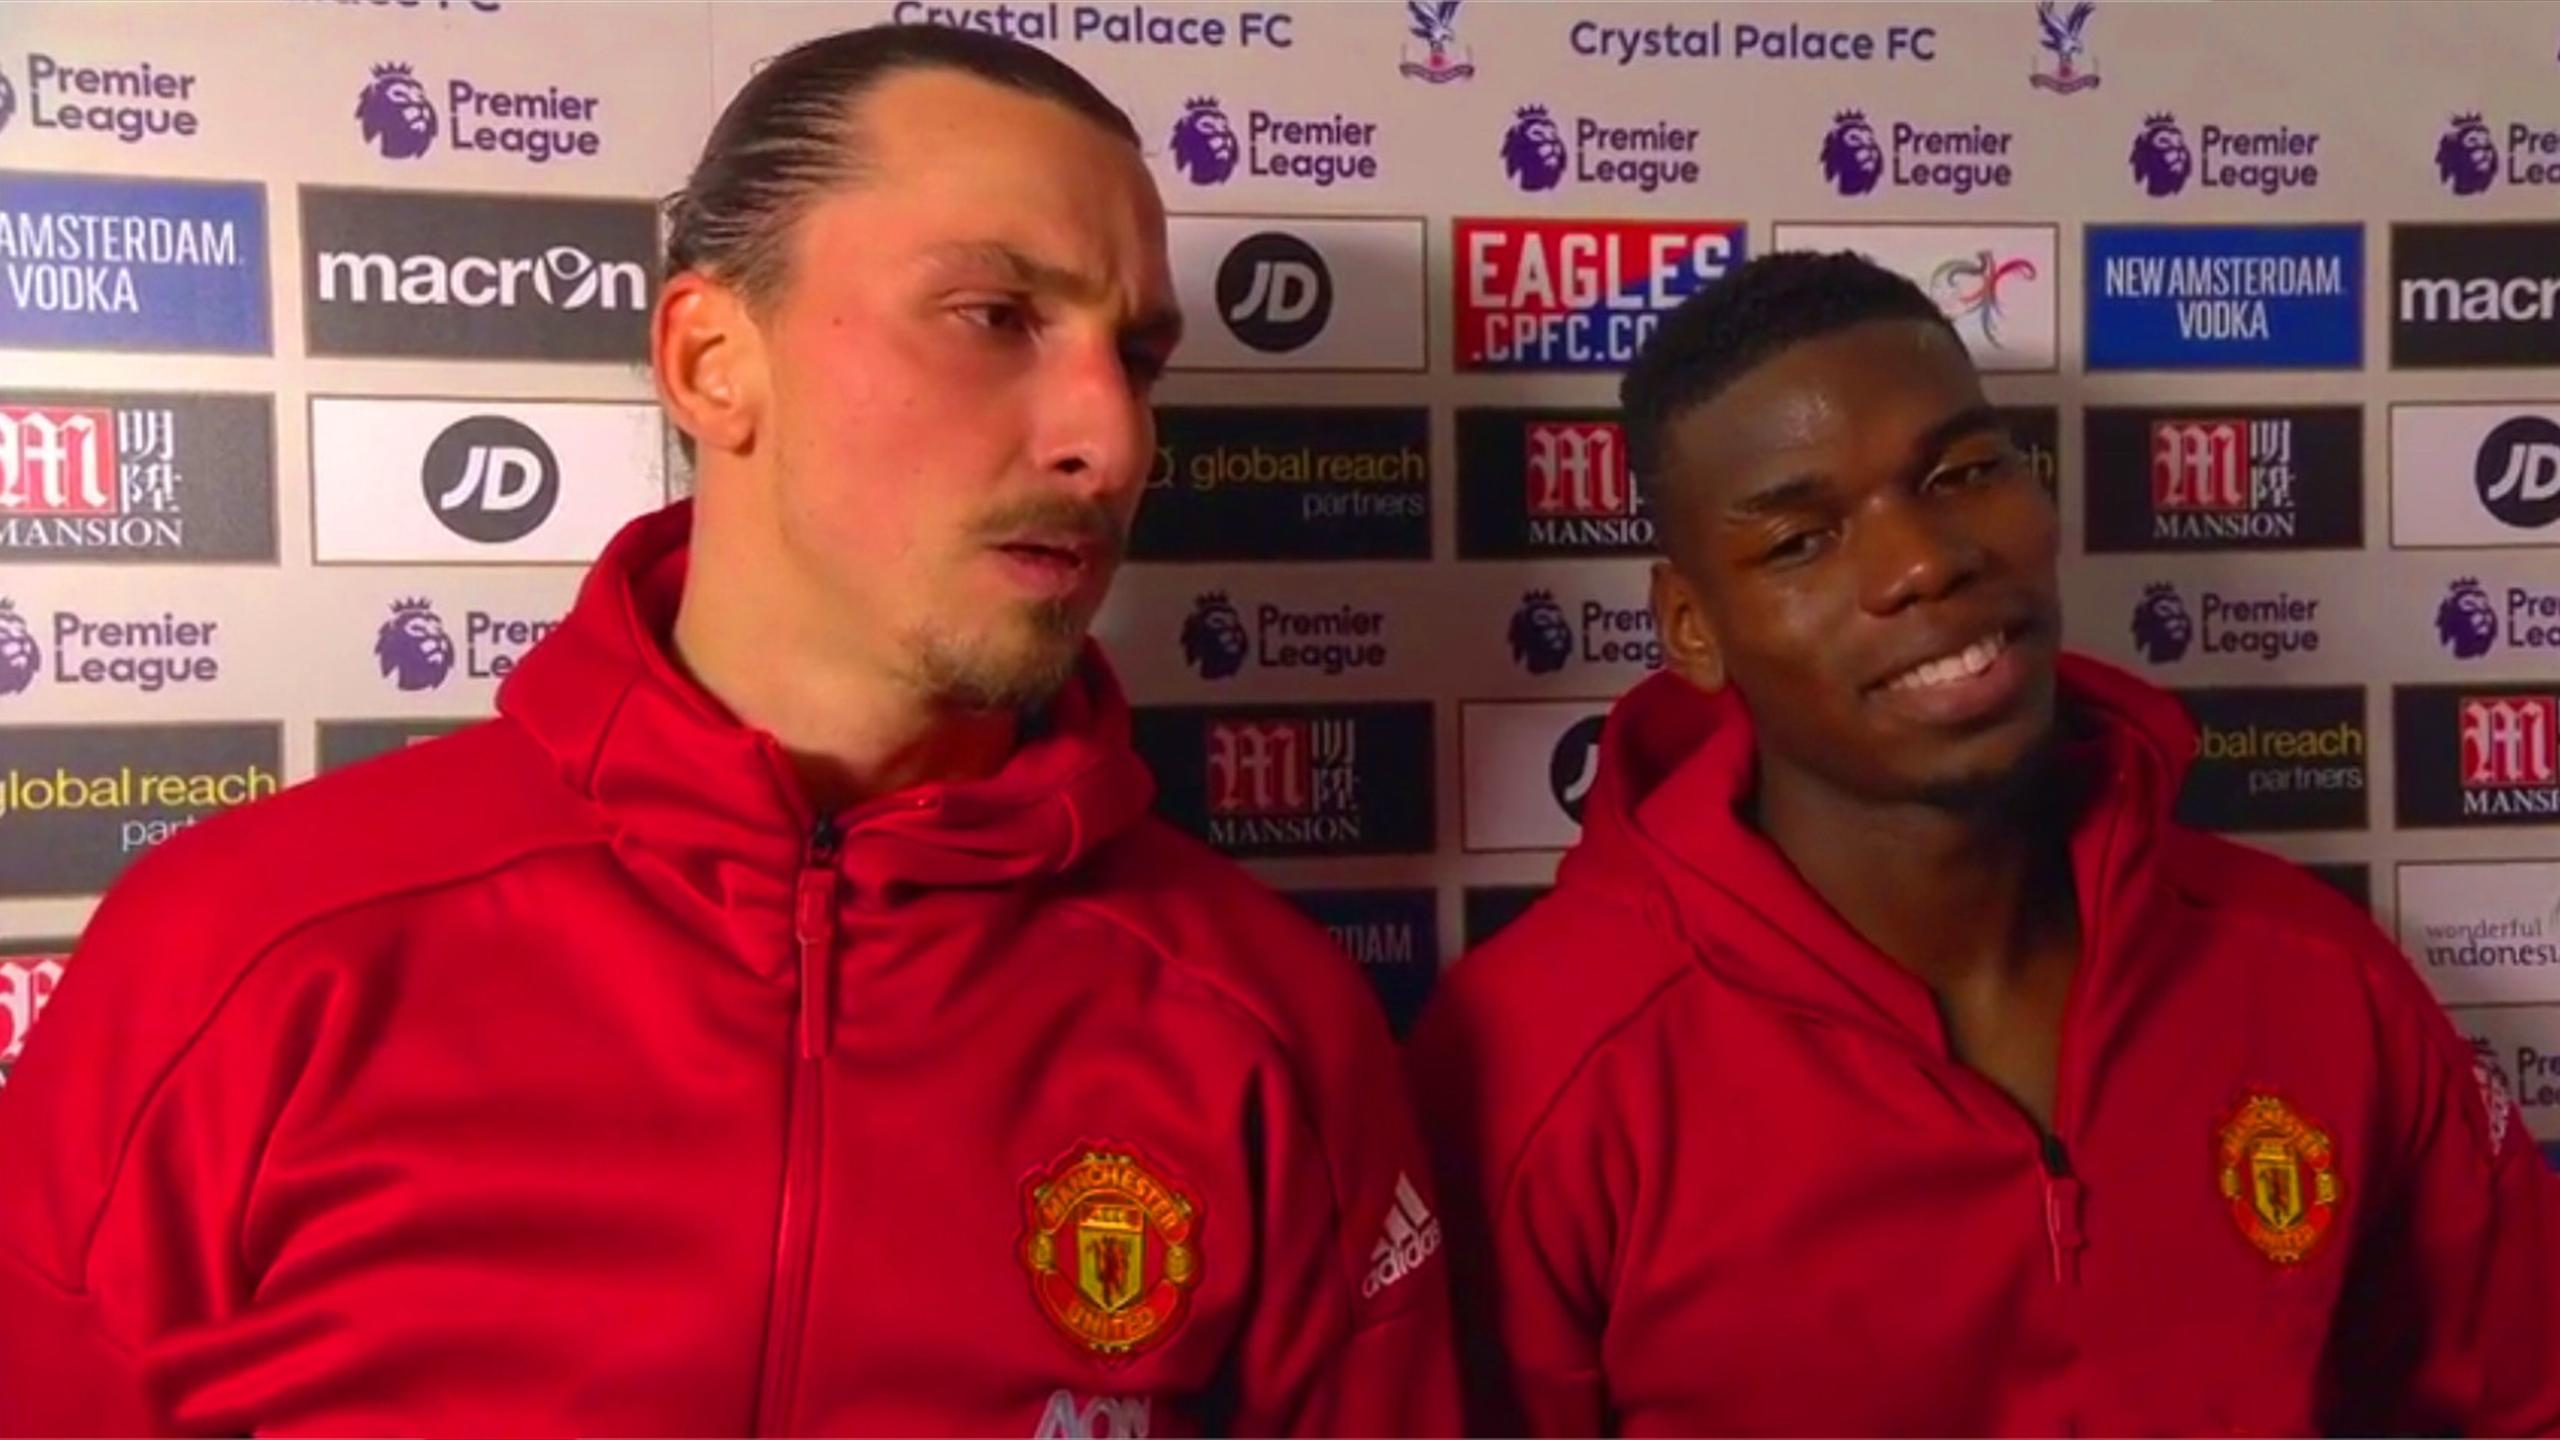 Zlatan Ibrahimovic and Paul Pogba after a Manchester United win (BT Sport on Twitter)